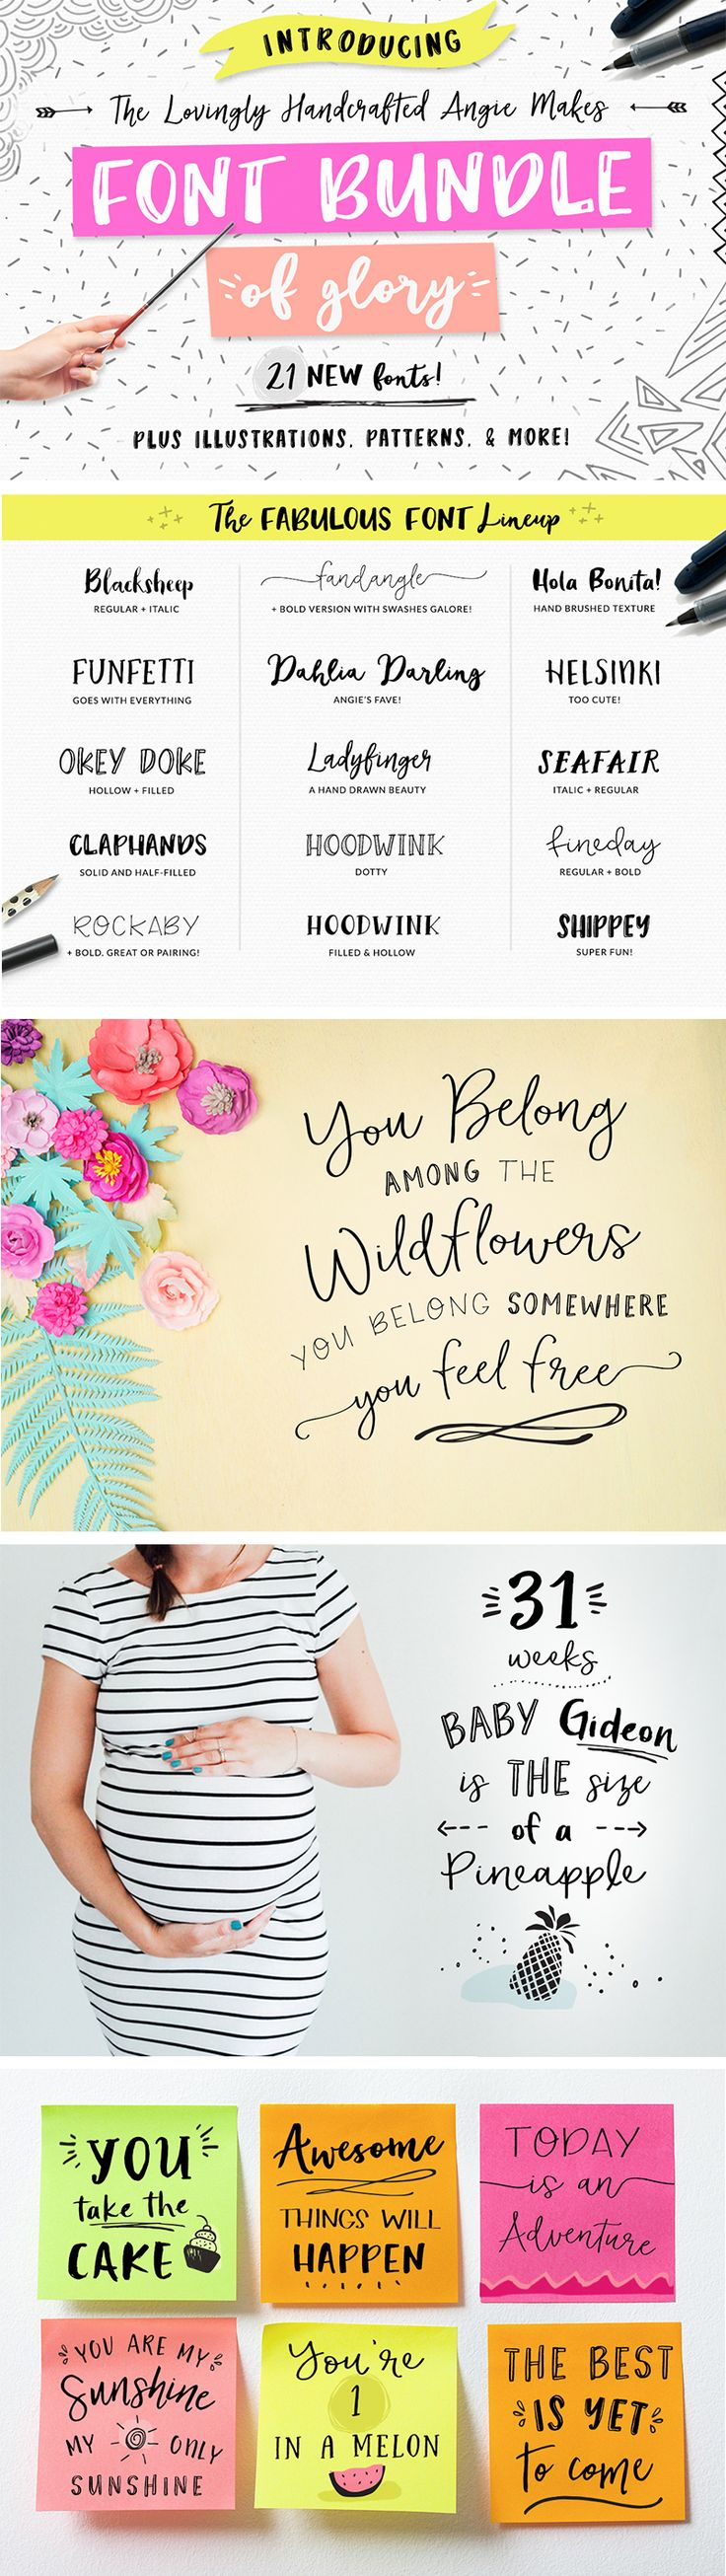 Angie Makes Font Bundle of Glory | angiemakes.com